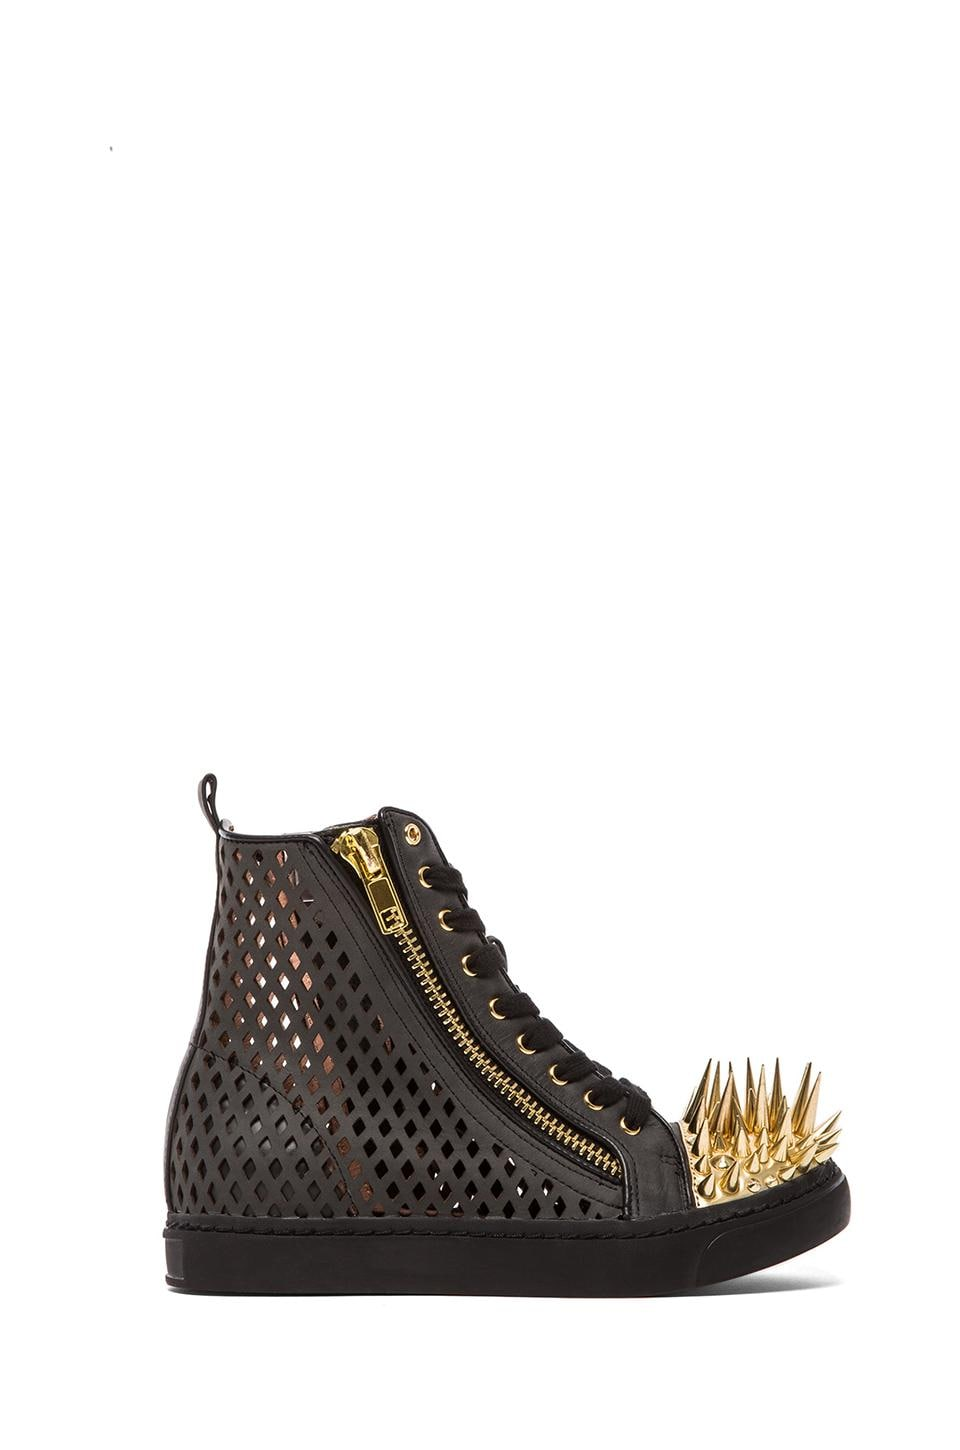 Jeffrey Campbell Adams Spike in Black Perf/Gold